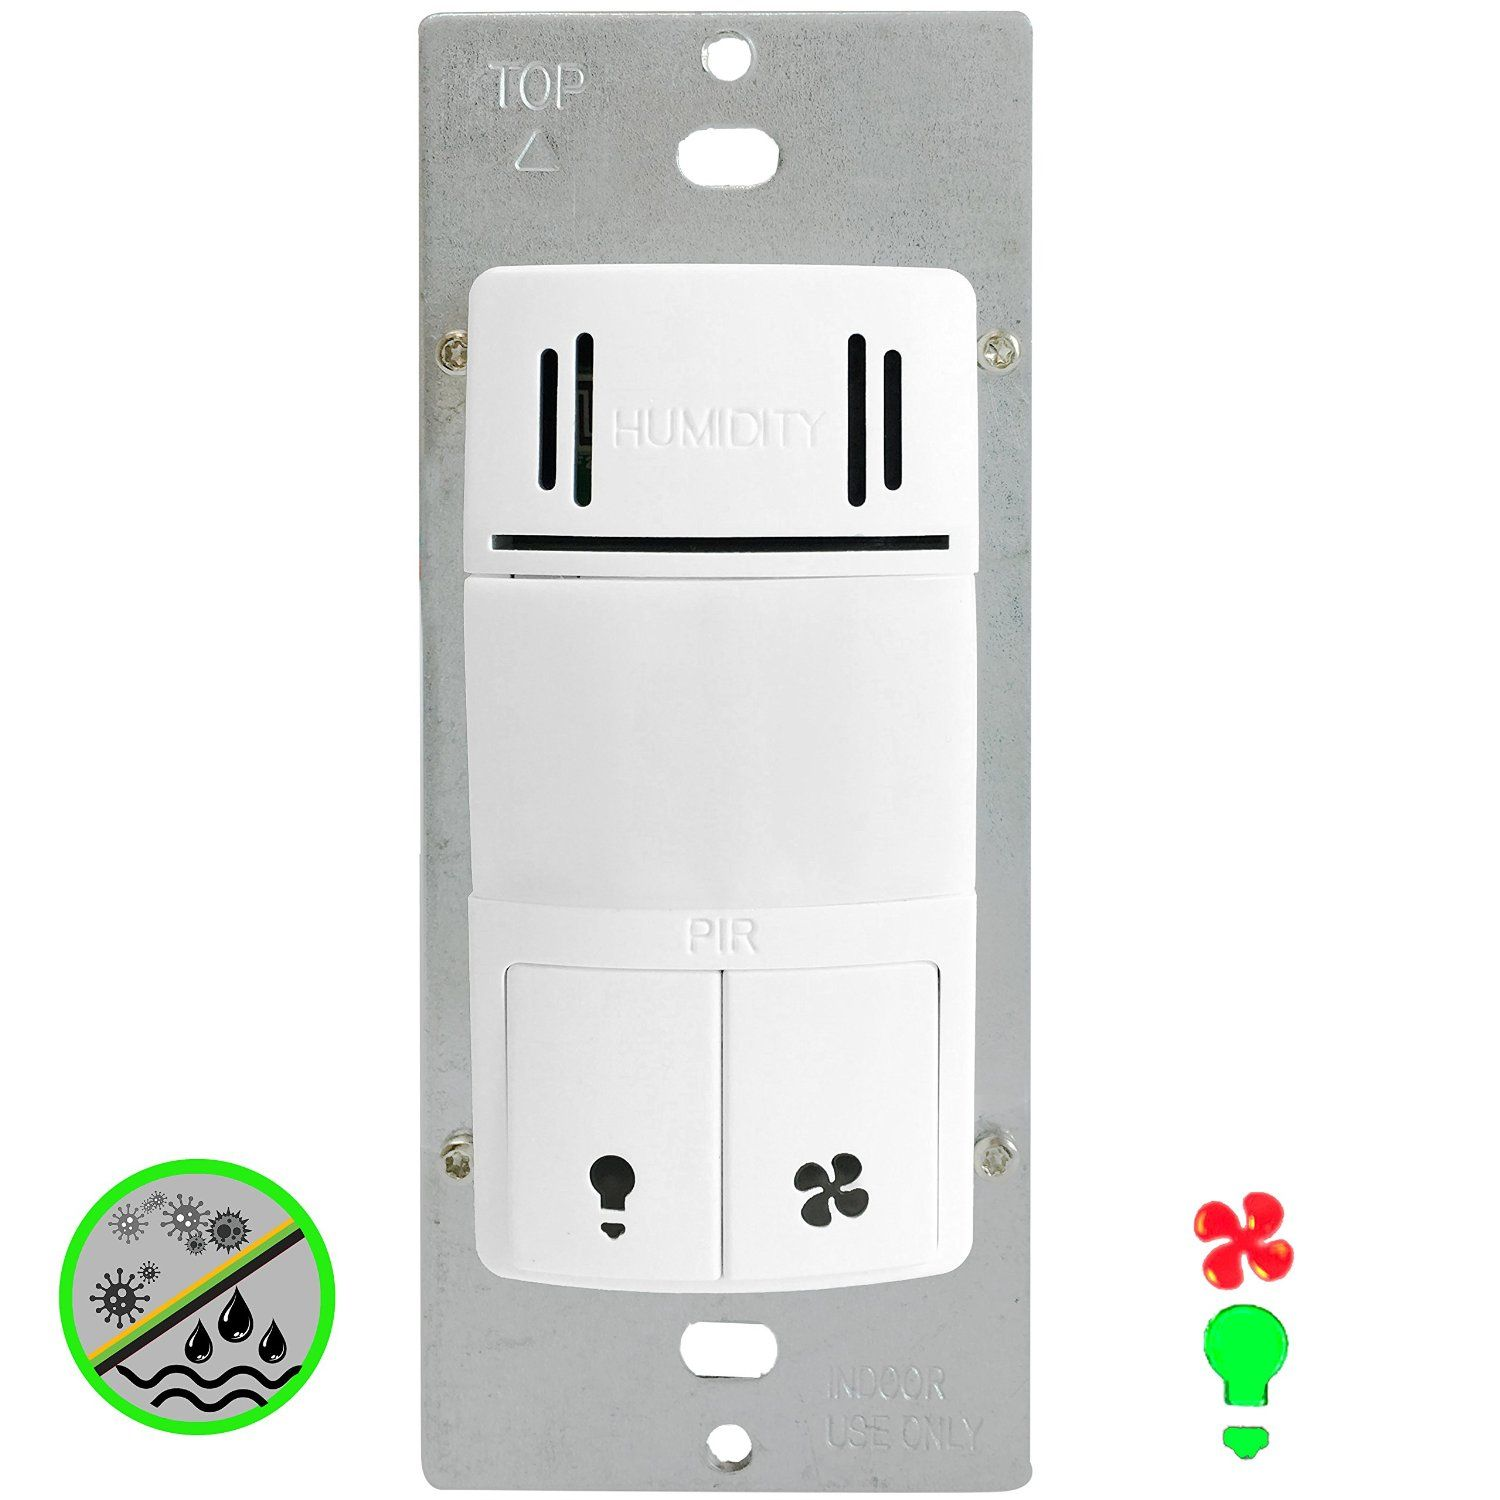 Enerlites Dwhos W Humidity Motion Sensor Switch For Bathroom Fan Light Dual Technology Controls 2 Loads Fac Humidity Sensor Bathroom Fan Bathroom Fan Light